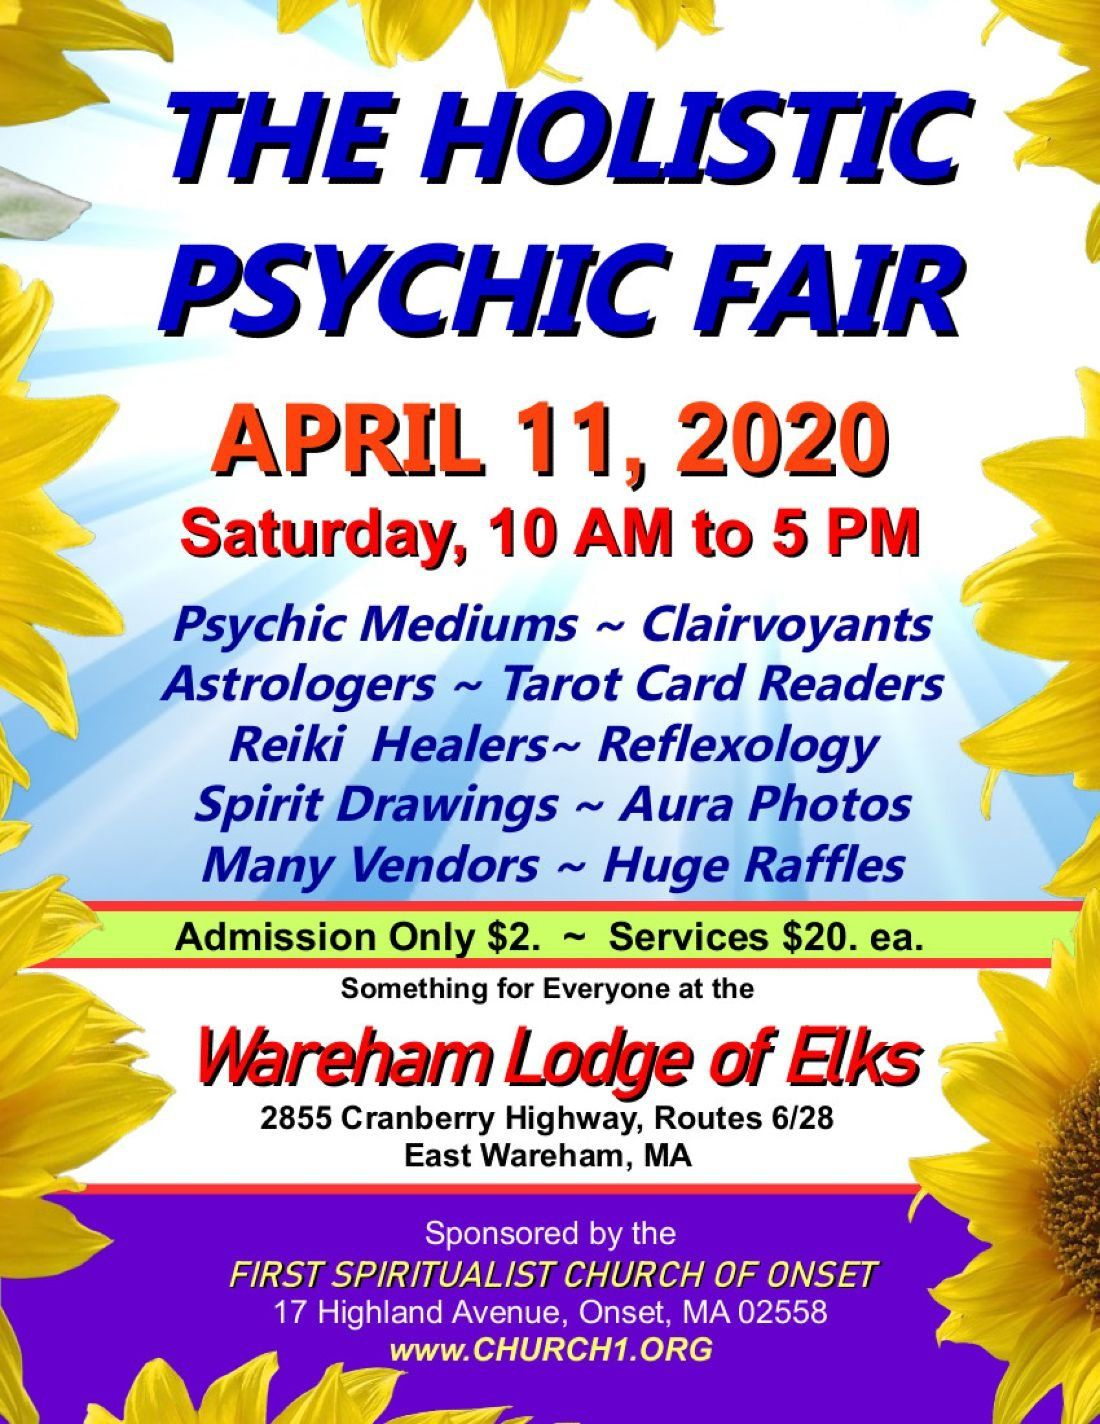 Phoenix Psychic Fair 2020.Psychic Fair Events In The City Top Upcoming Events For